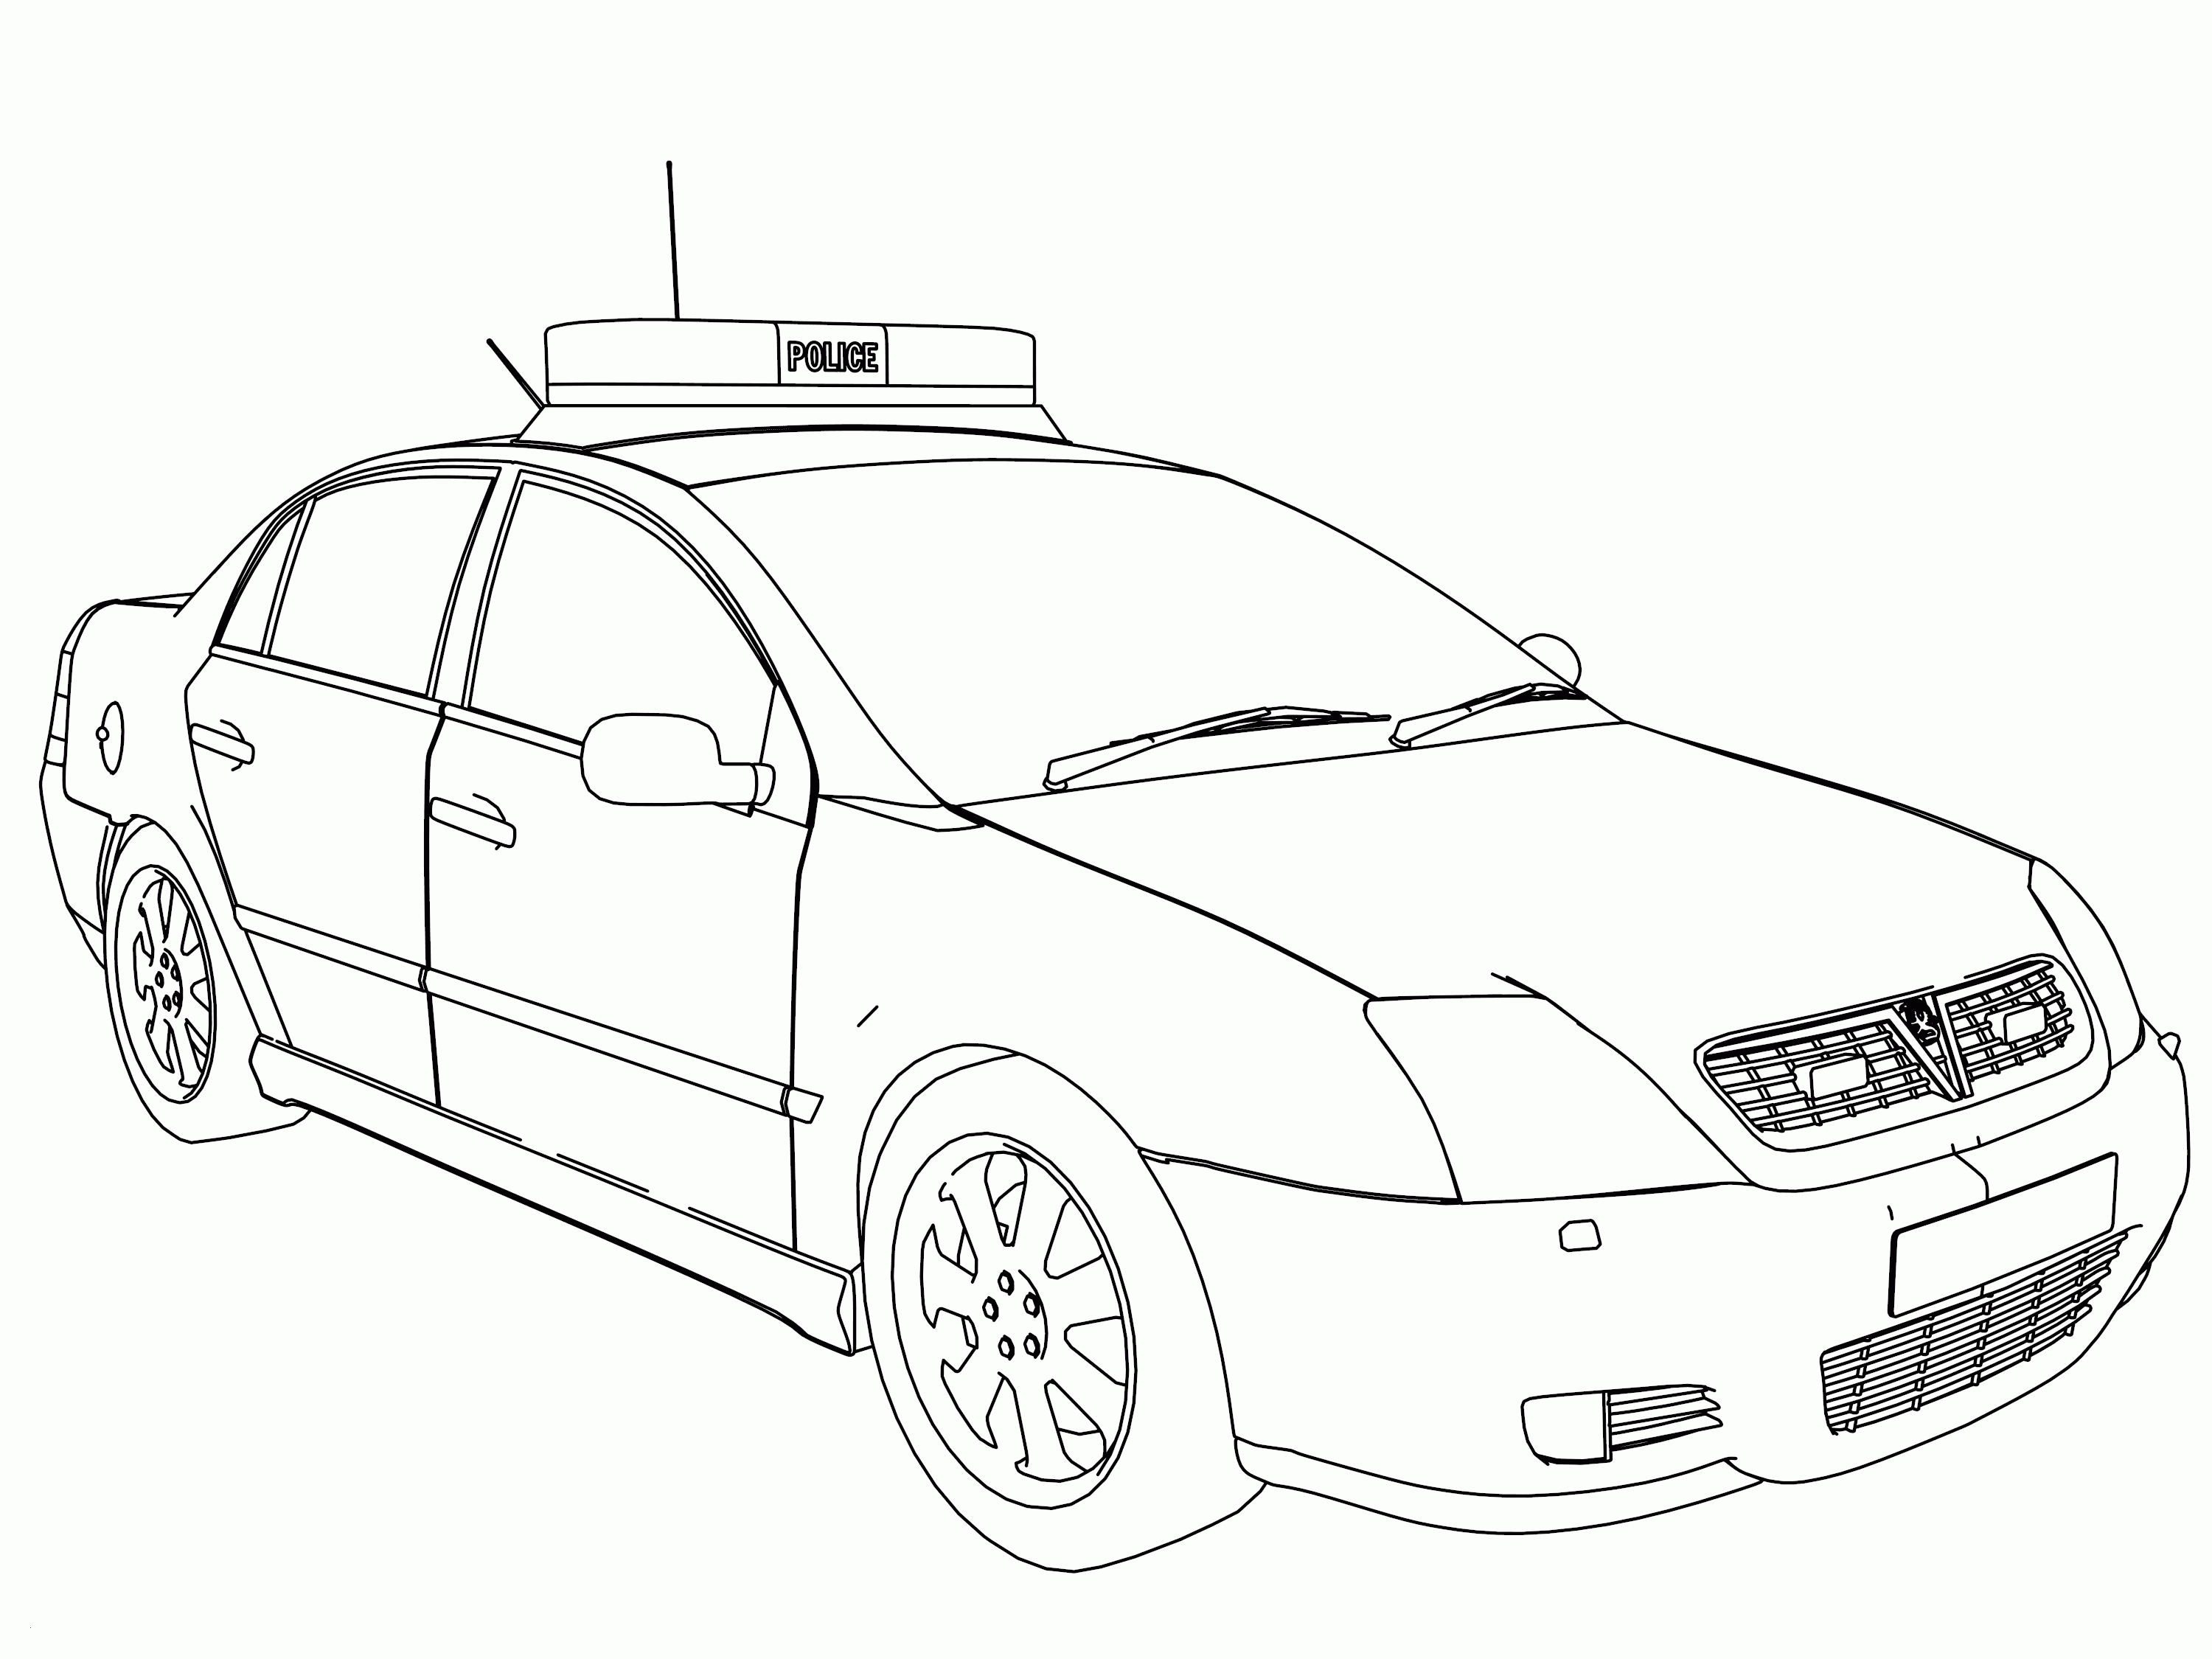 23 Police Car Coloring Pages to Print Download - Coloring ...